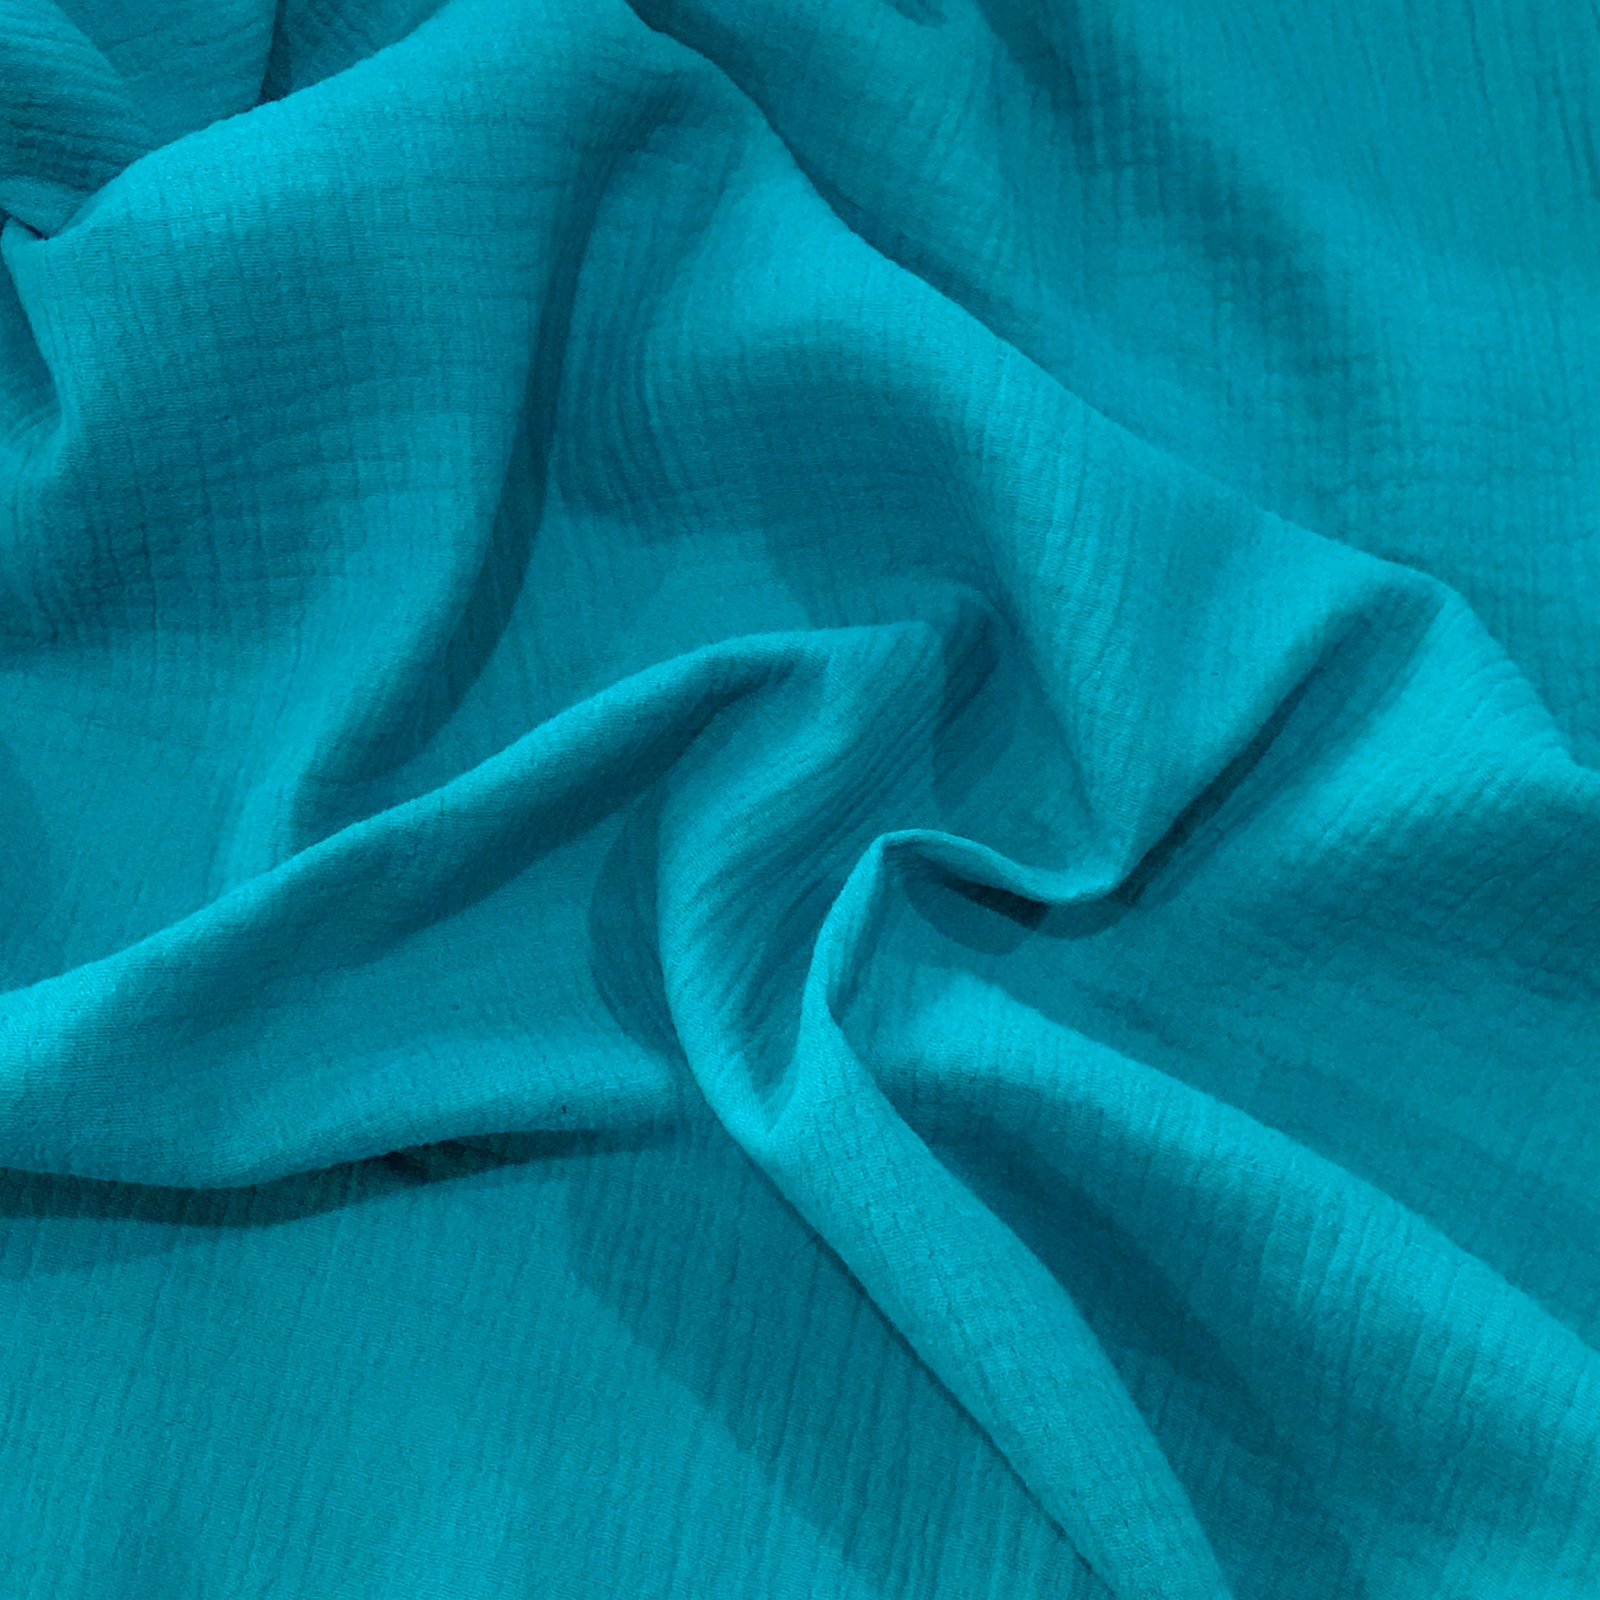 Organic Cotton Double Gauze - Teal